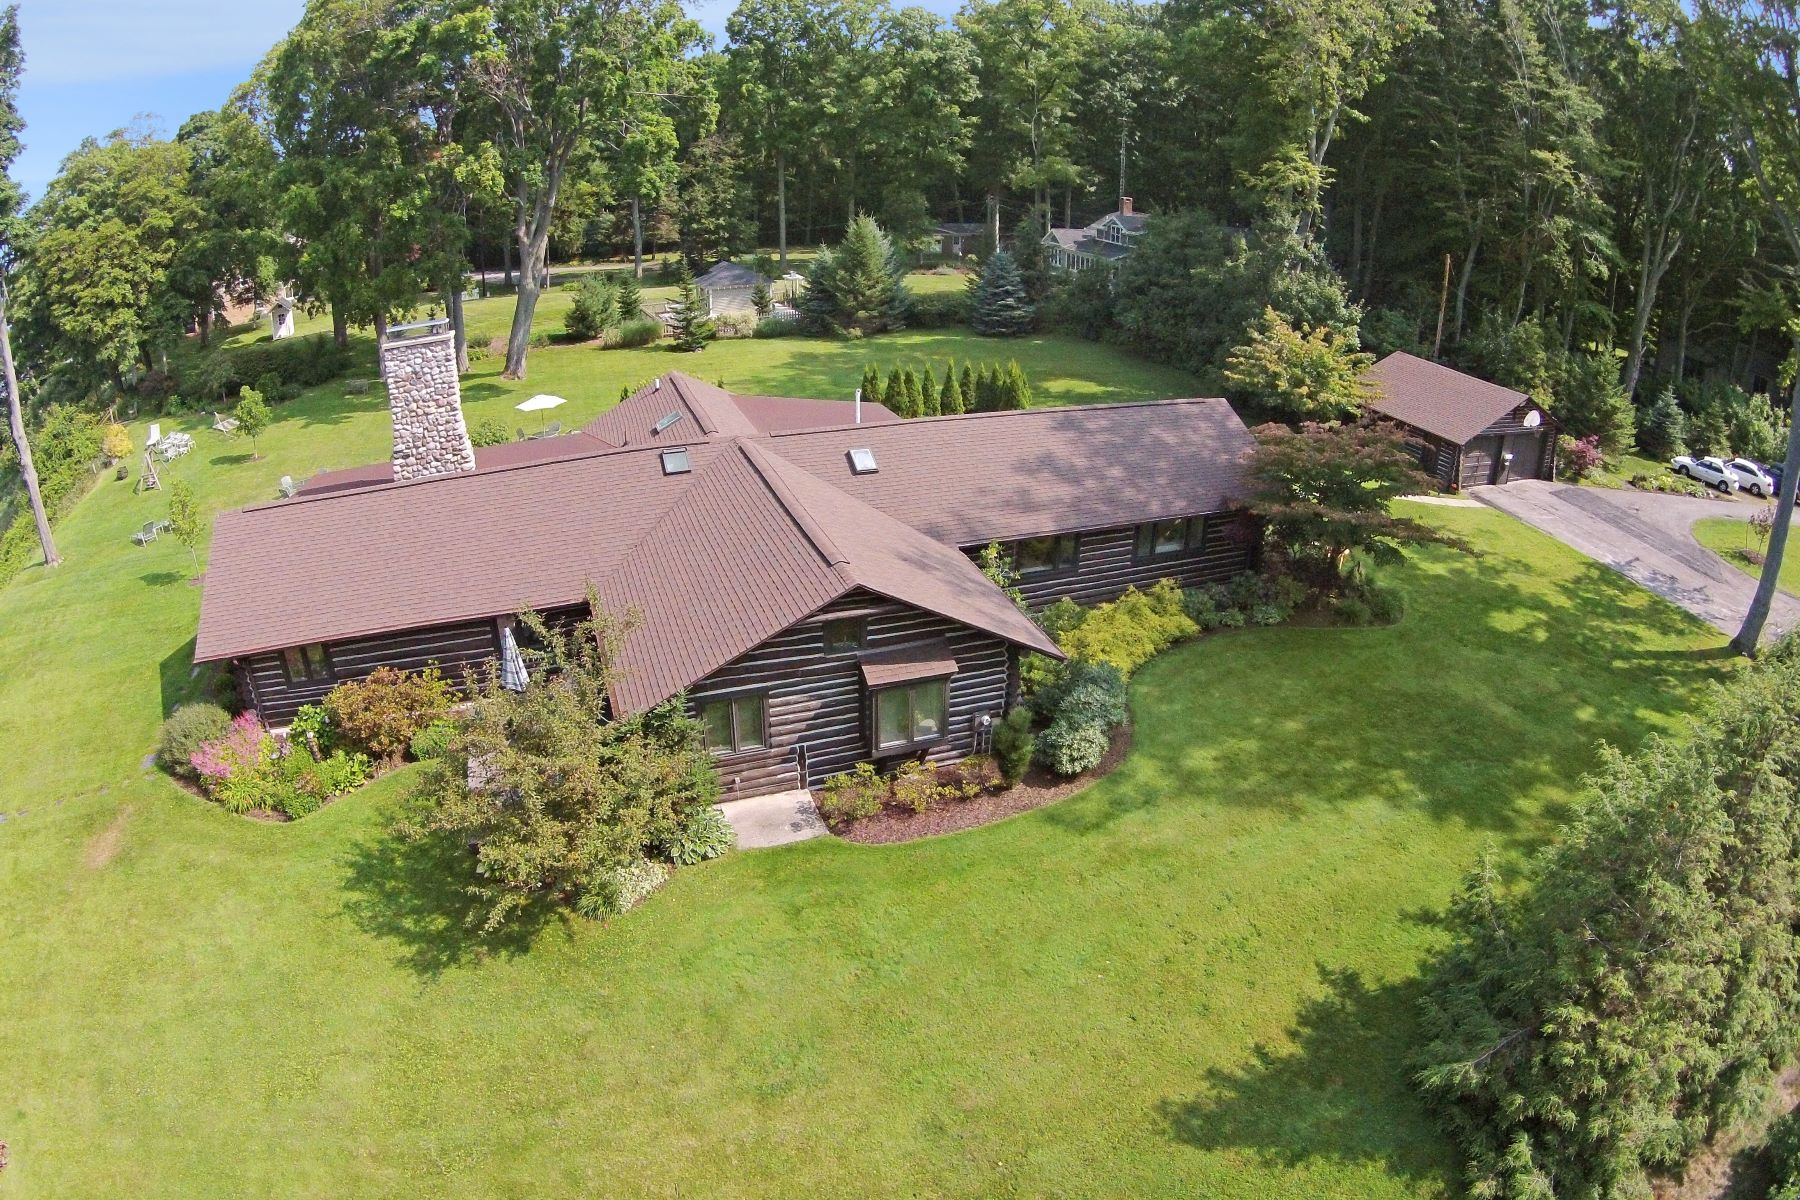 Single Family Homes for Sale at Charming Waterfront Home 3119 Scenic Drive Muskegon, Michigan 49445 United States